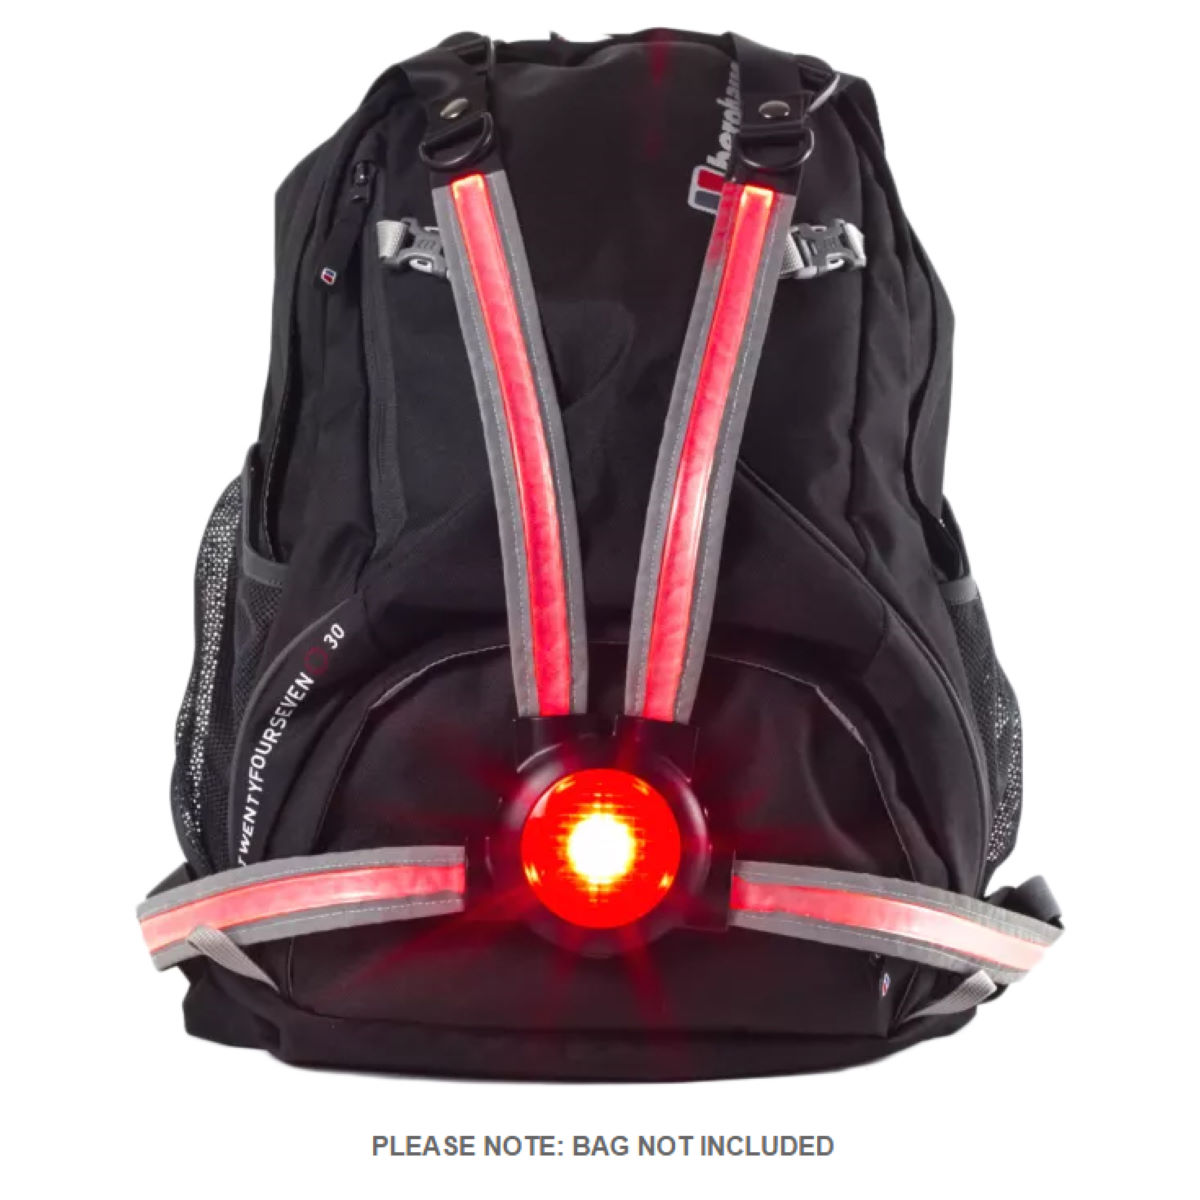 Oxford Commuter X4 Rear Light